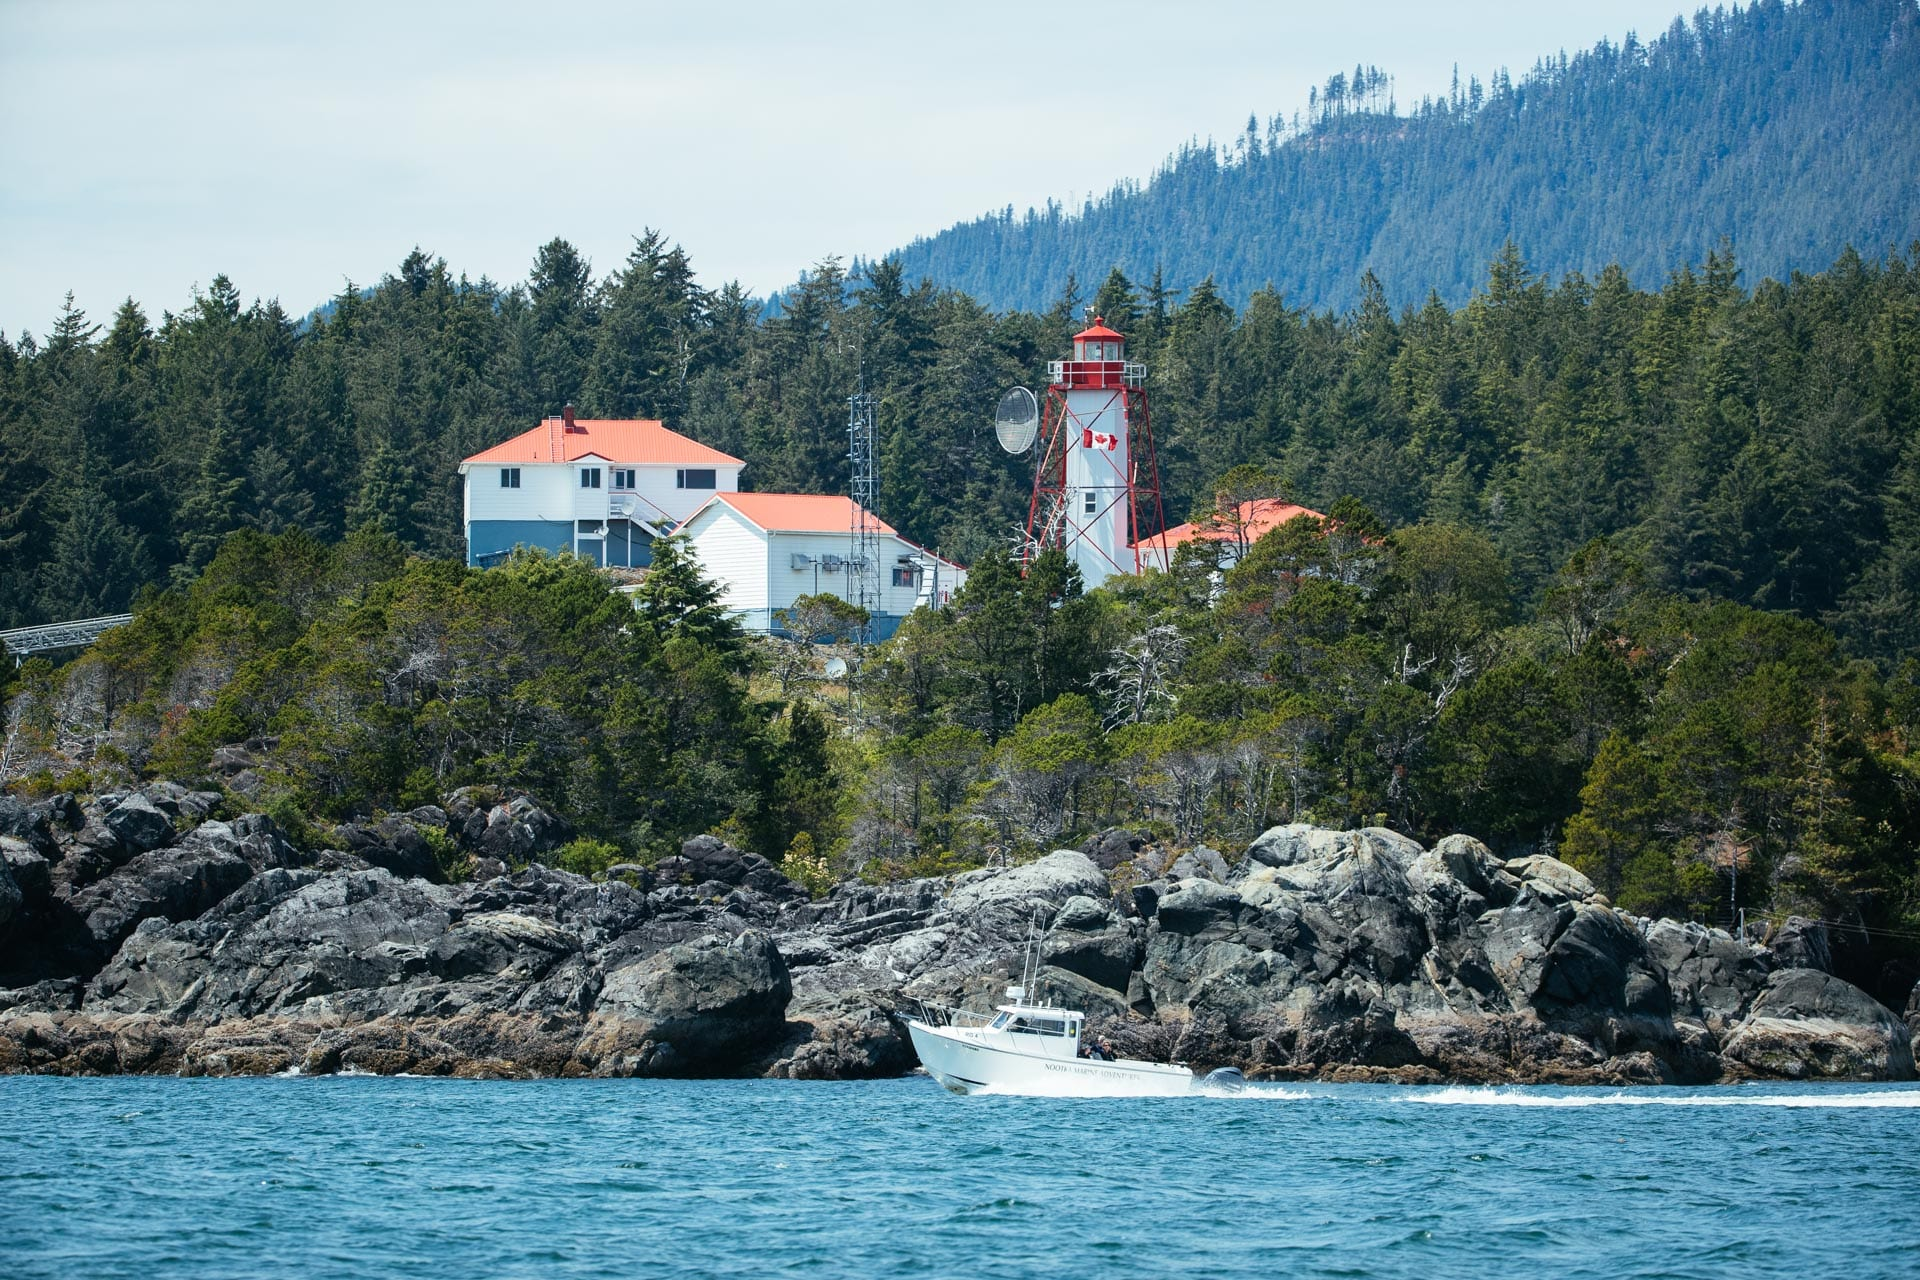 Nootka Marine Adventures - A Brief History